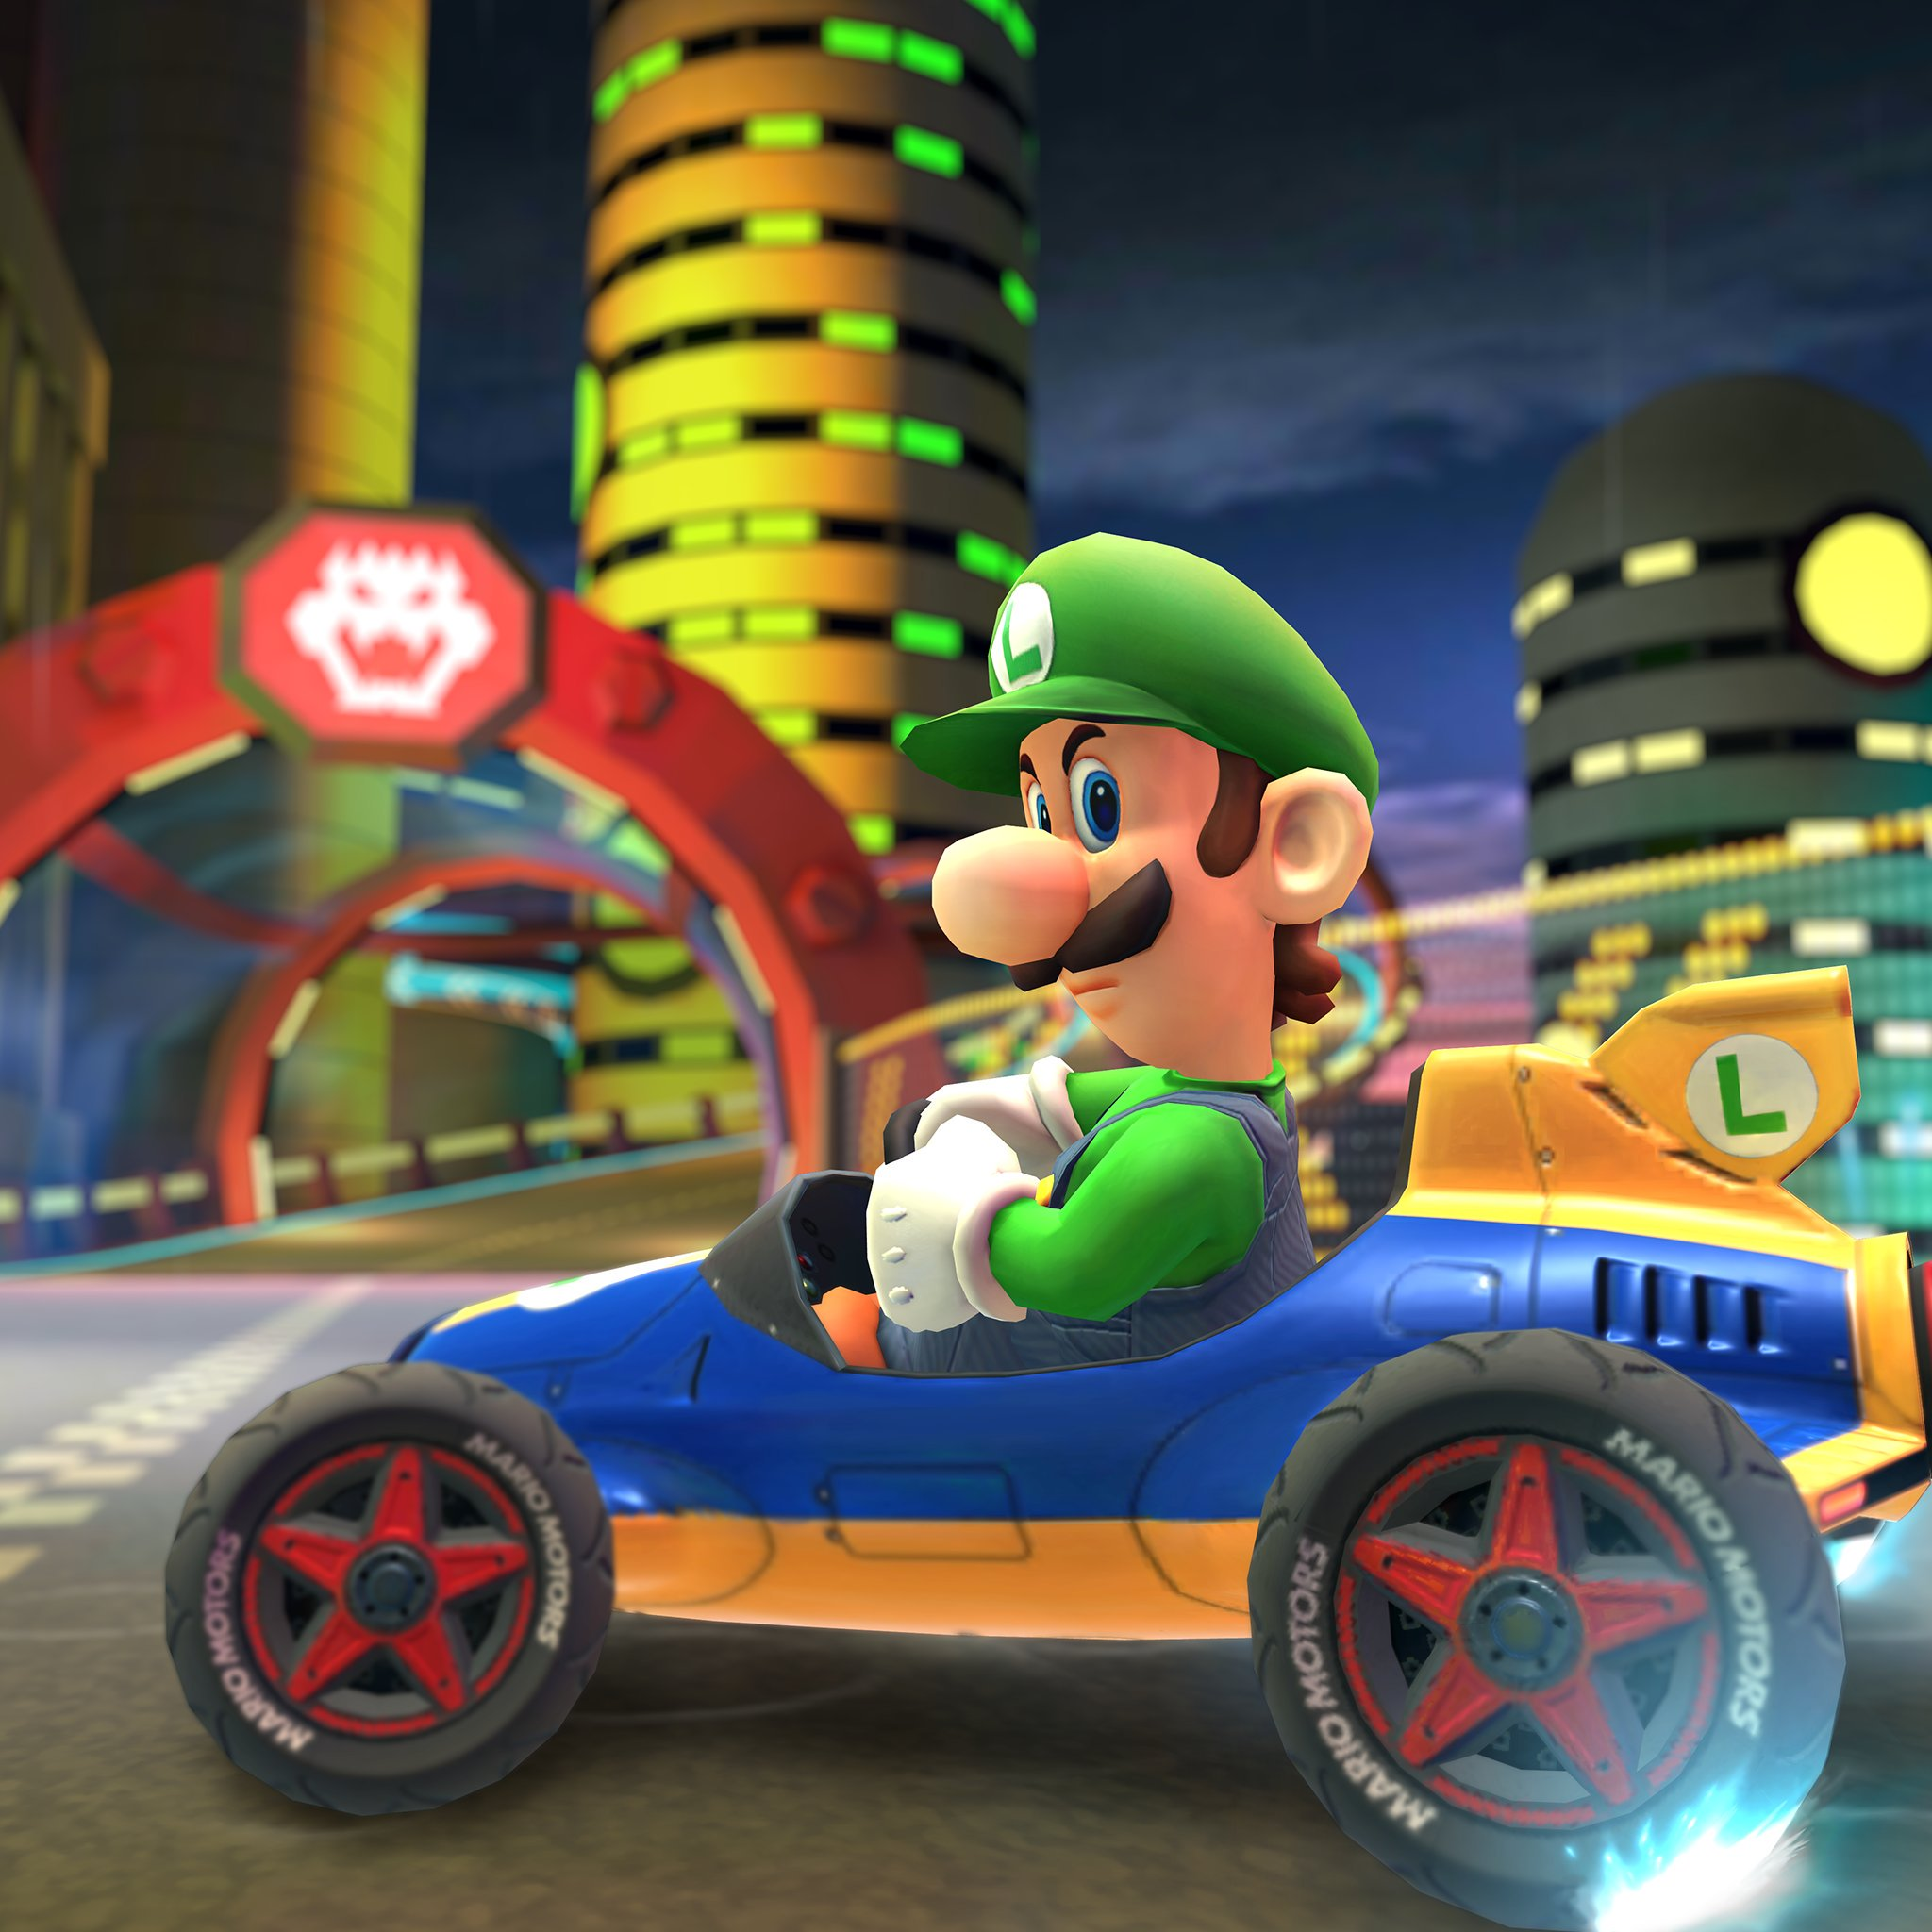 Luigi makes his way to Mario Kart Tour, just in time for the Halloween Cup